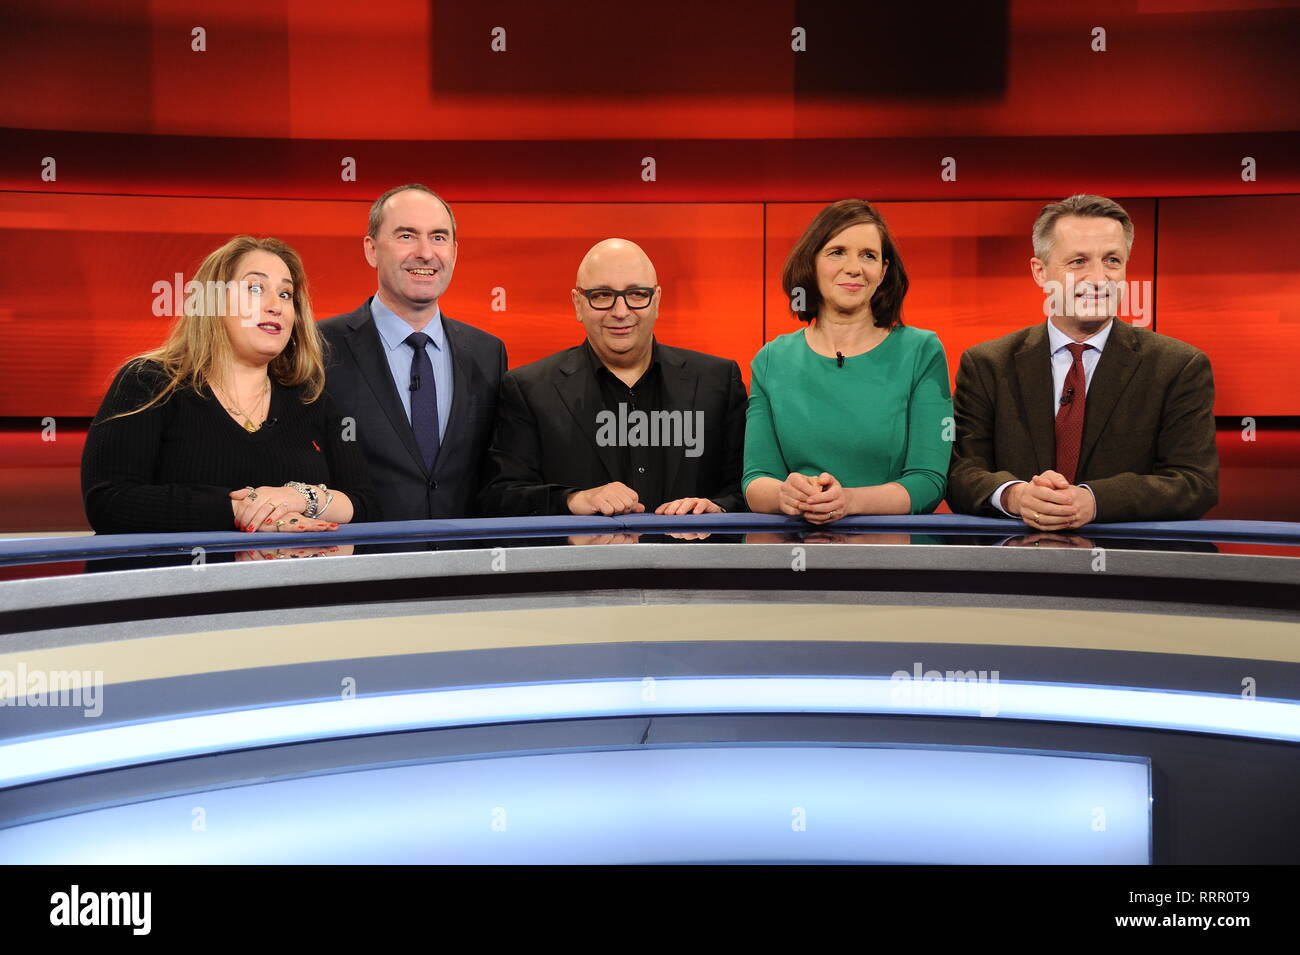 25 February 2019, Köln: The guests of the ARD talk show Hart aber Fair on 25.02.2019 in Cologne with the theme 'Home Germany - only for Germans or open to all? ' Idil Baydar, l-r, Hubert Aiwanger, Armin Nassehi, presenter Frank Plasberg, Katrin Göring Eckardt and Nikolaus Blome  Photo: Horst Galuschka Photo: Horst Galuschka/dpa/Horst Galuschka dpa - Stock Image